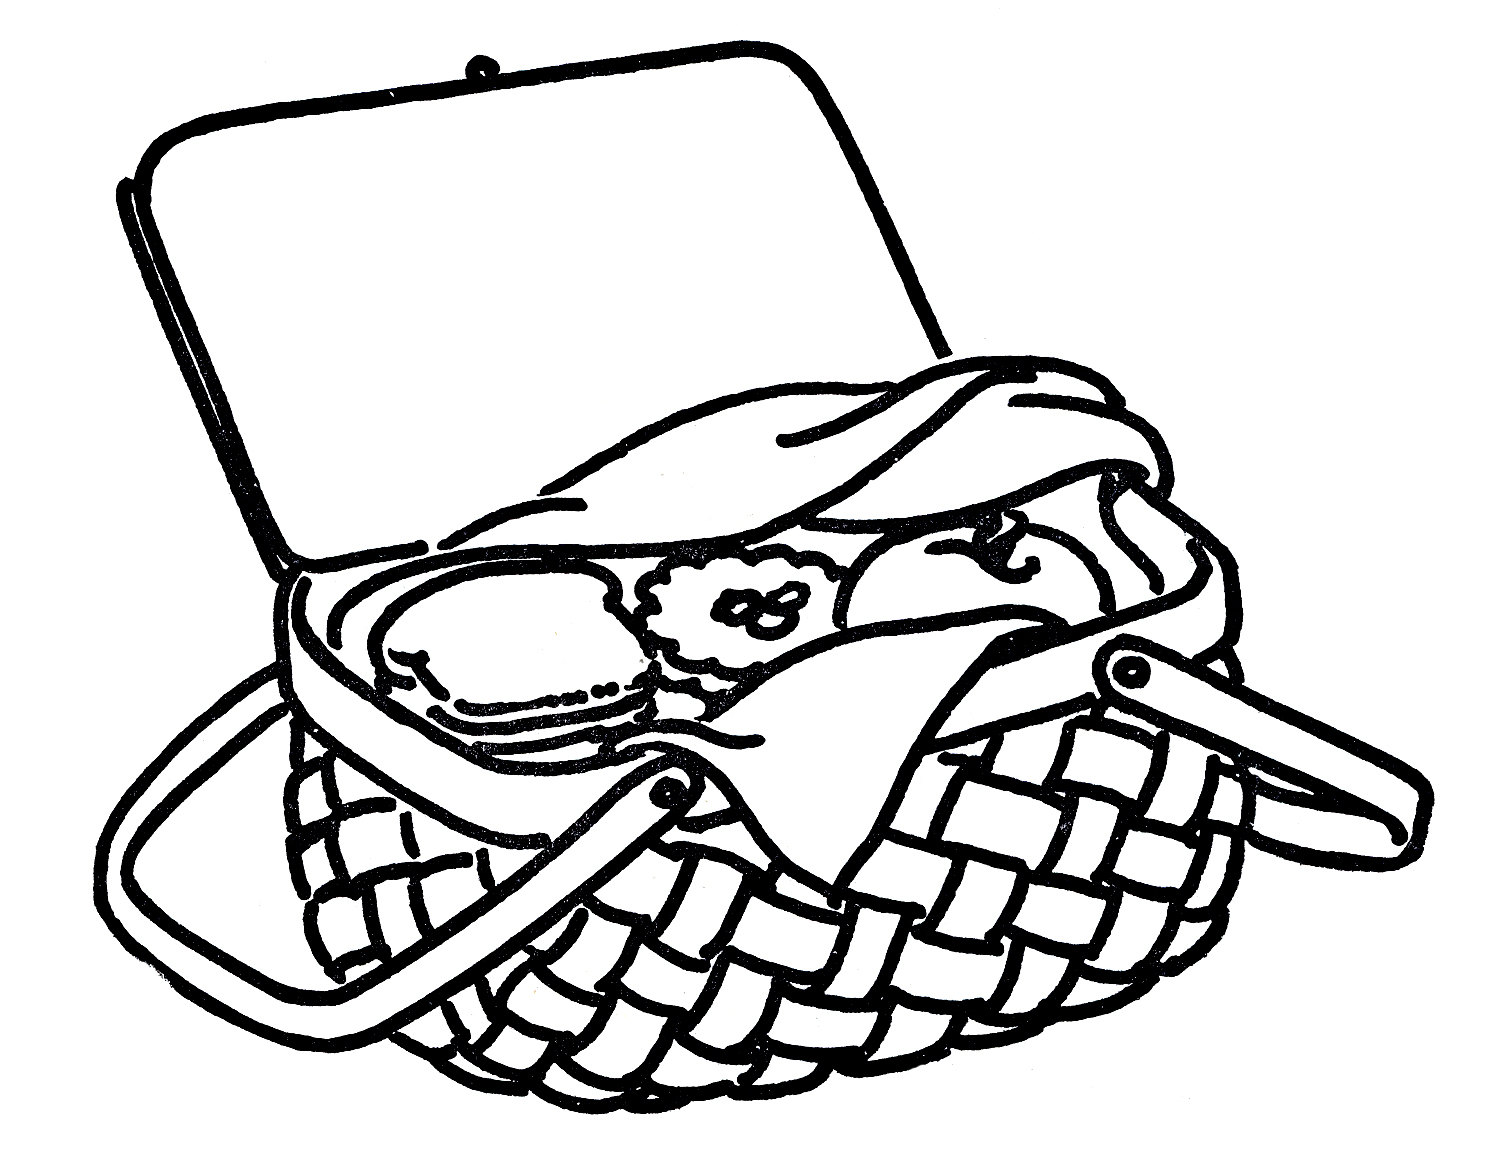 Basket Clip Art Black And White : Picnic basket clip art black and white clipart panda